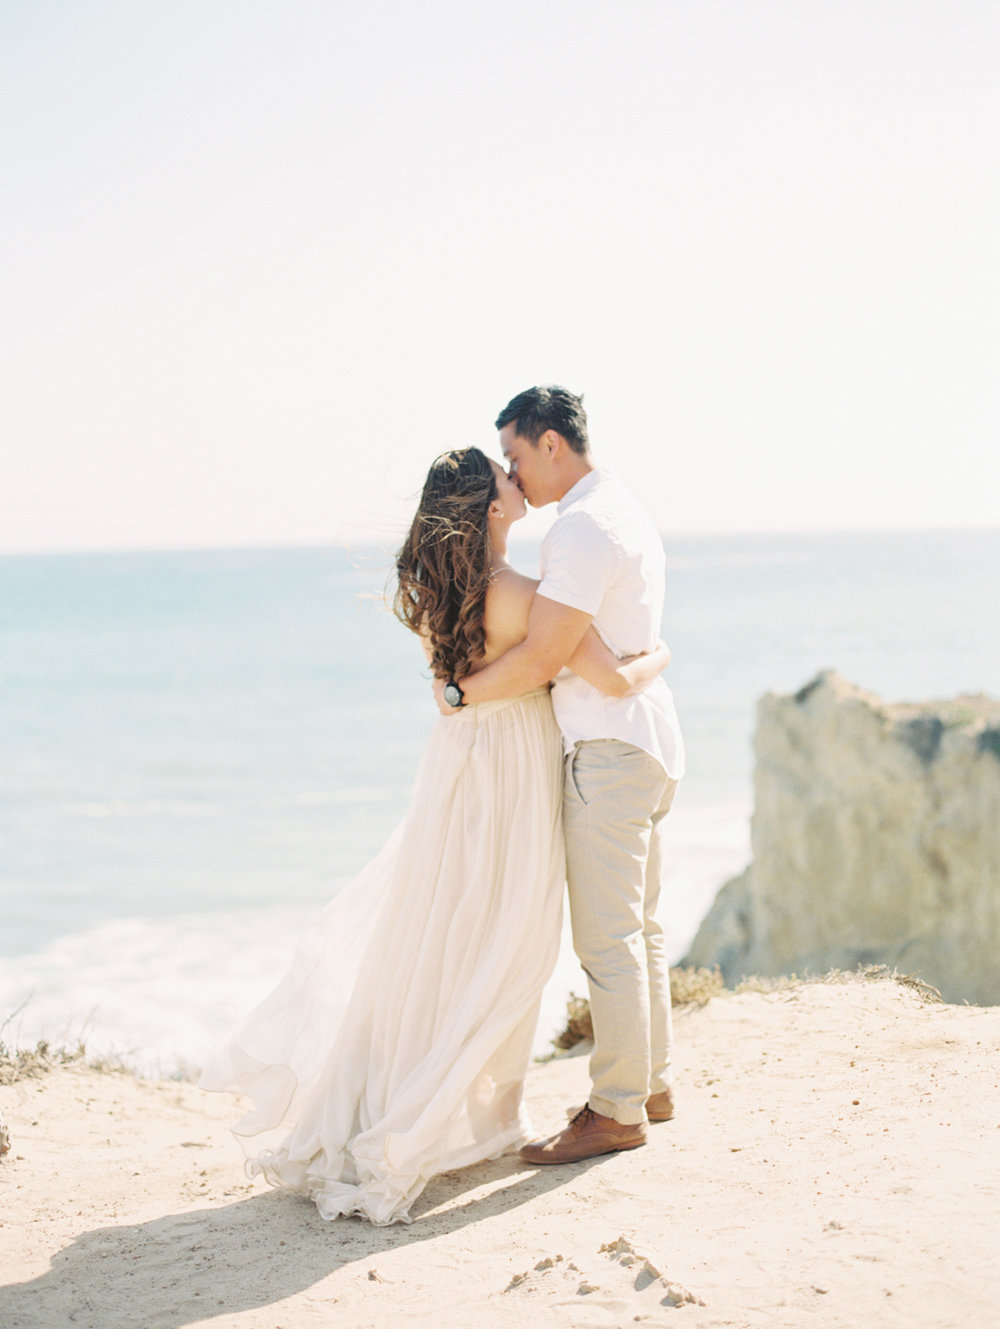 Jon Cu1613002657-R1-E010California-Engagement-Malibu-Film-Wedding-Orange-County-Los-Angeles-bride-groom.jpg